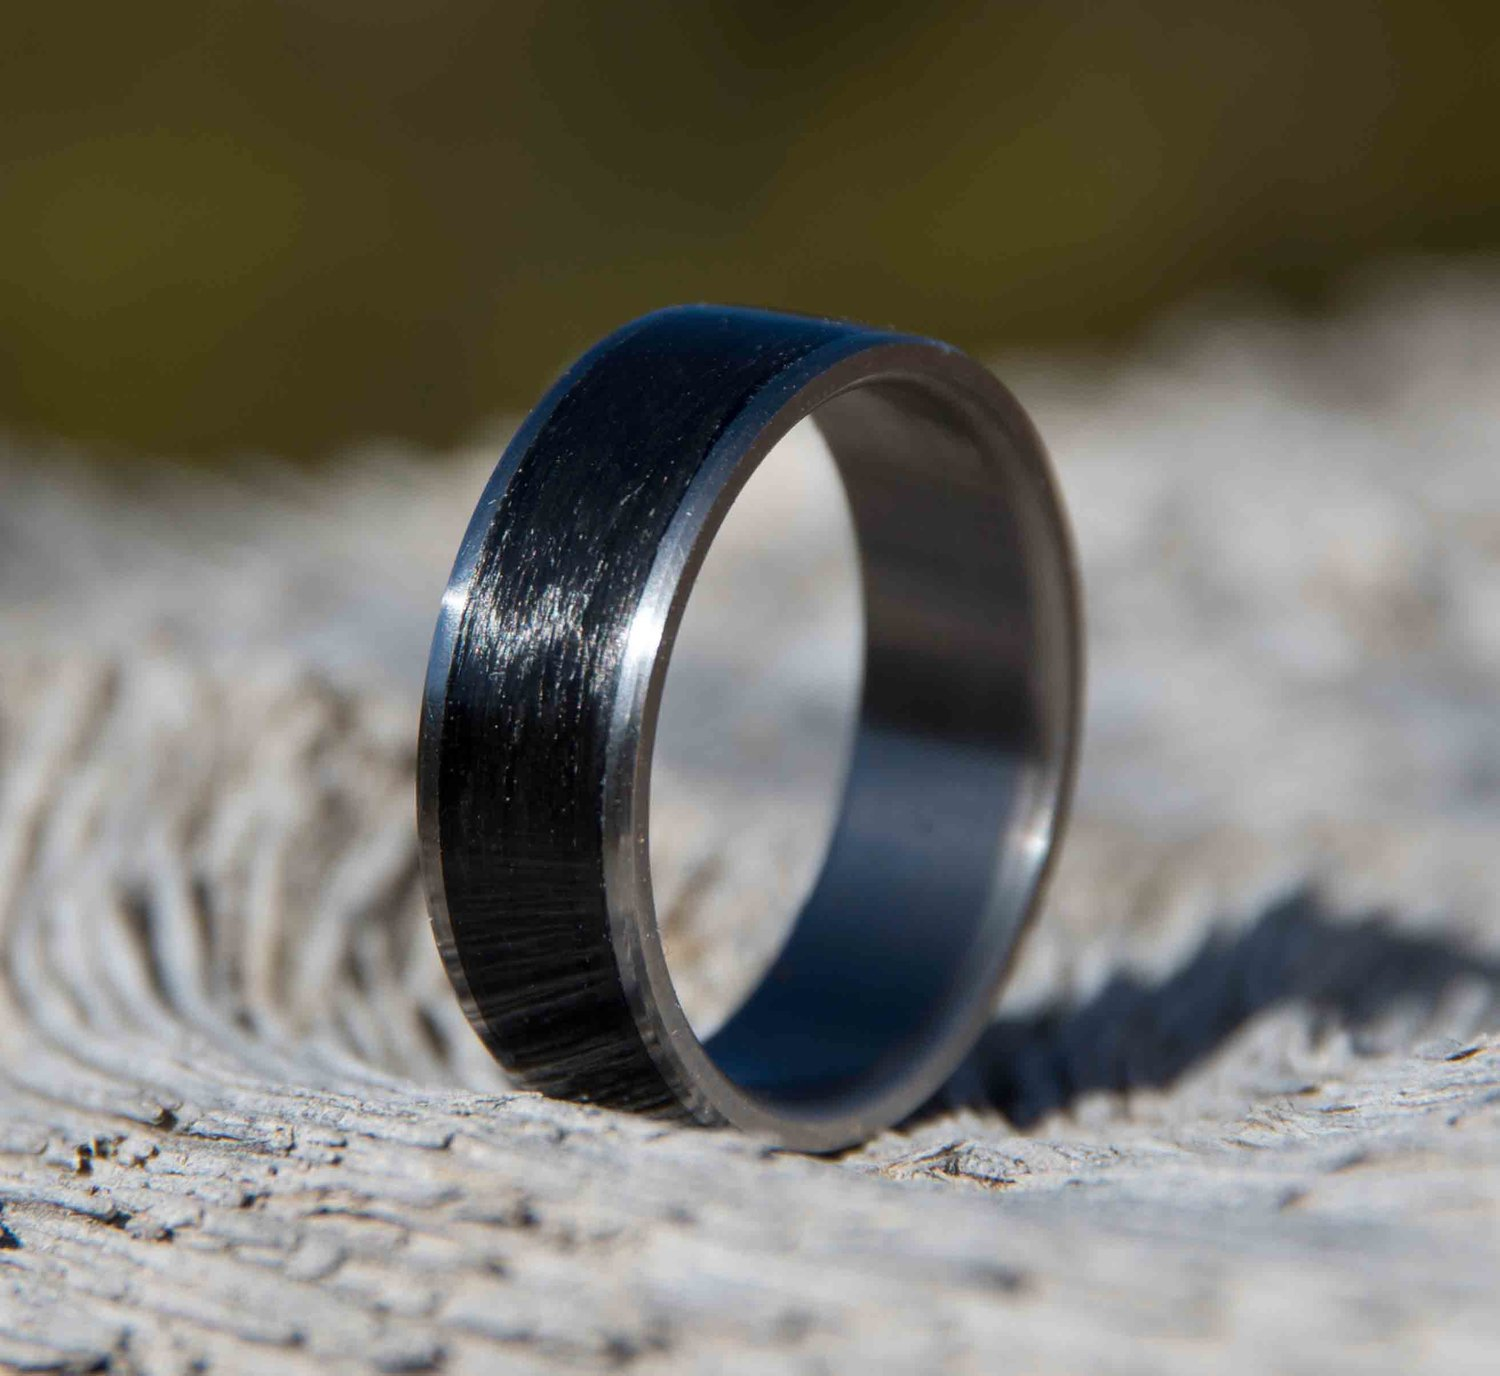 ring index wedding bands rings carbonfiber fiber all carbon